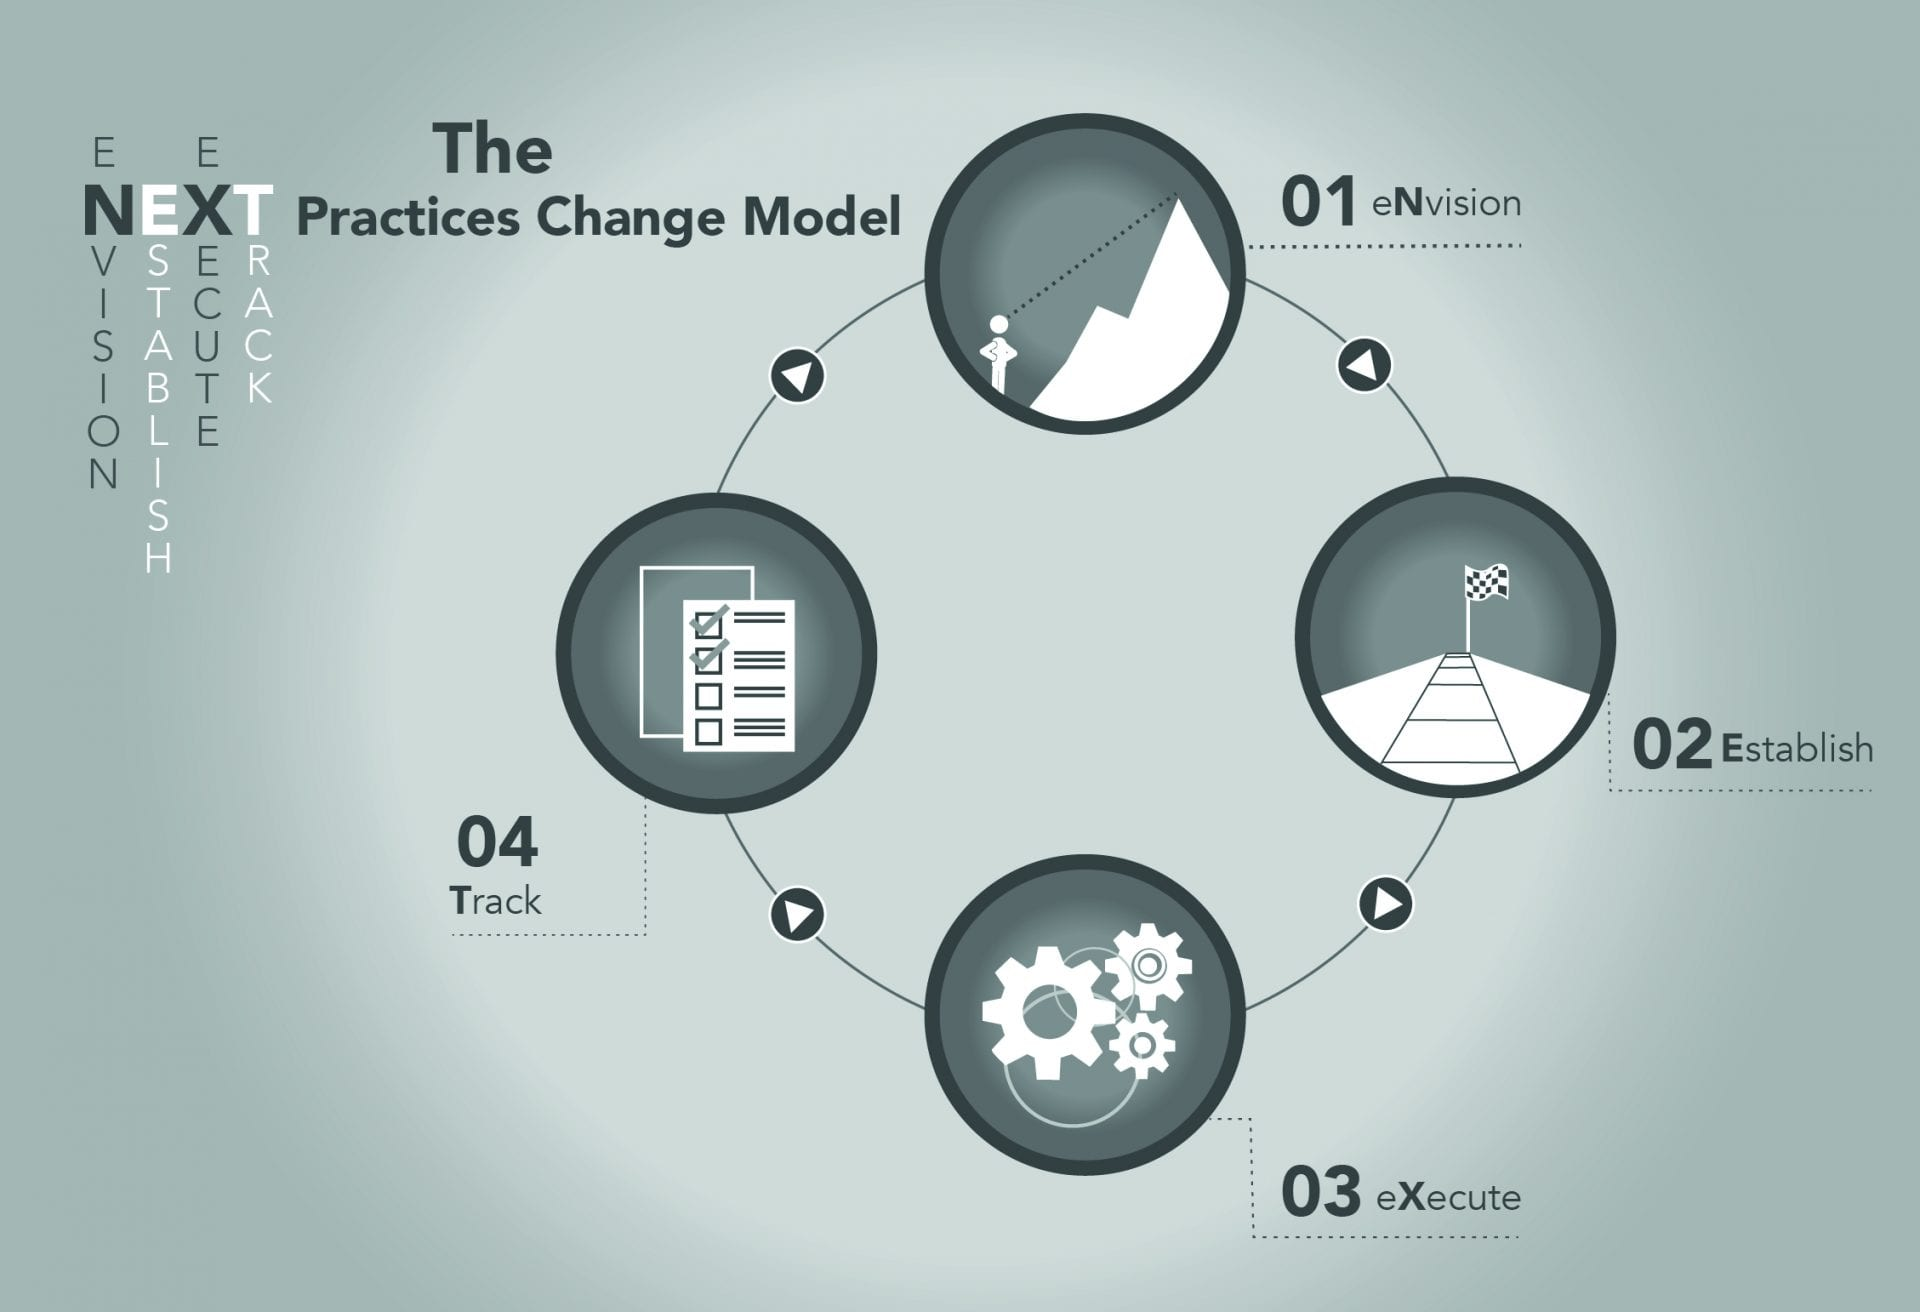 Results Based Culture Next Practice Change Model